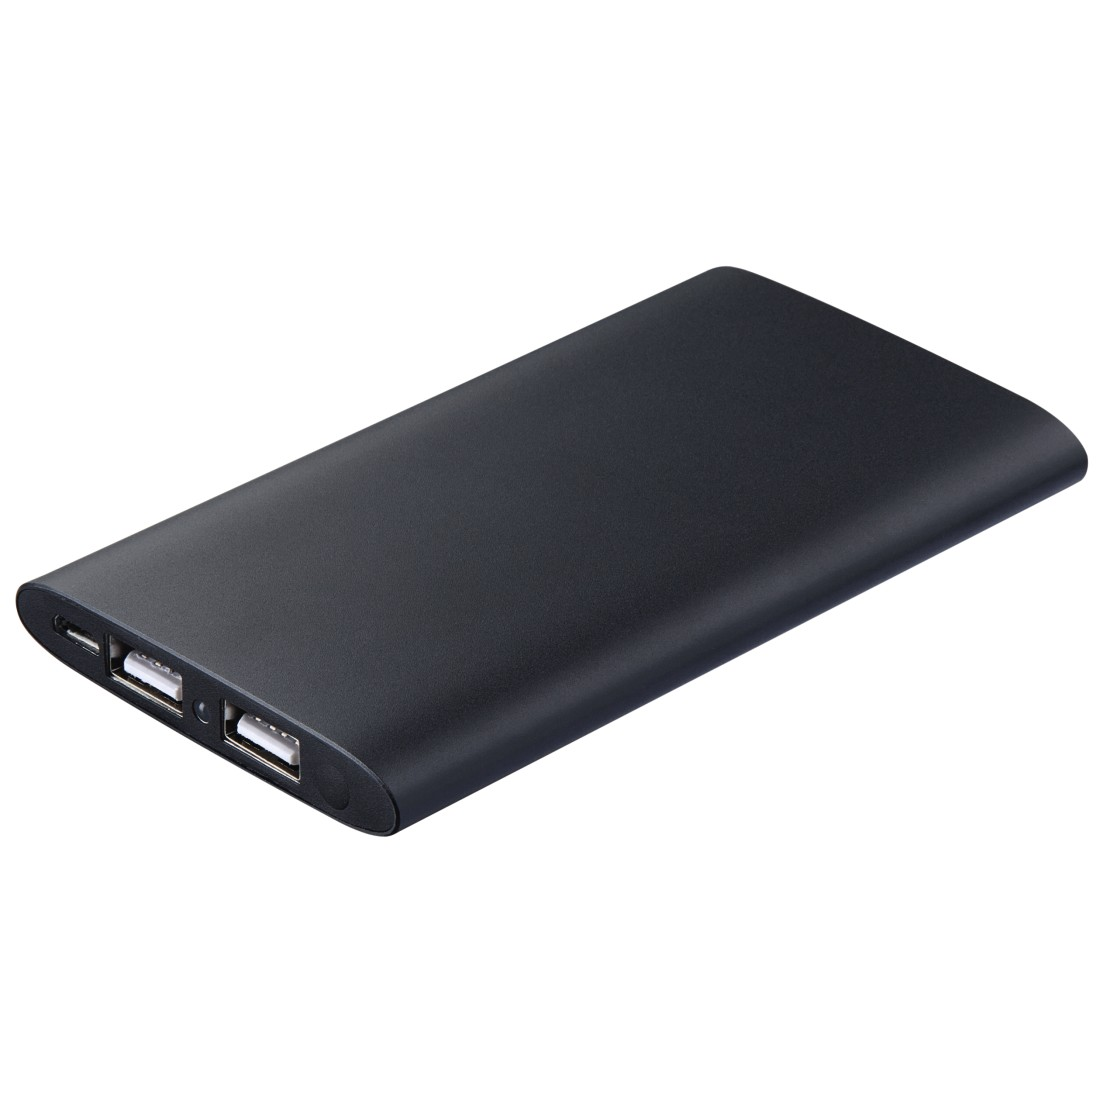 abx2 High-Res Image 2 - Hama, Premium Alu Power Pack, 5000 mAh, anthracite